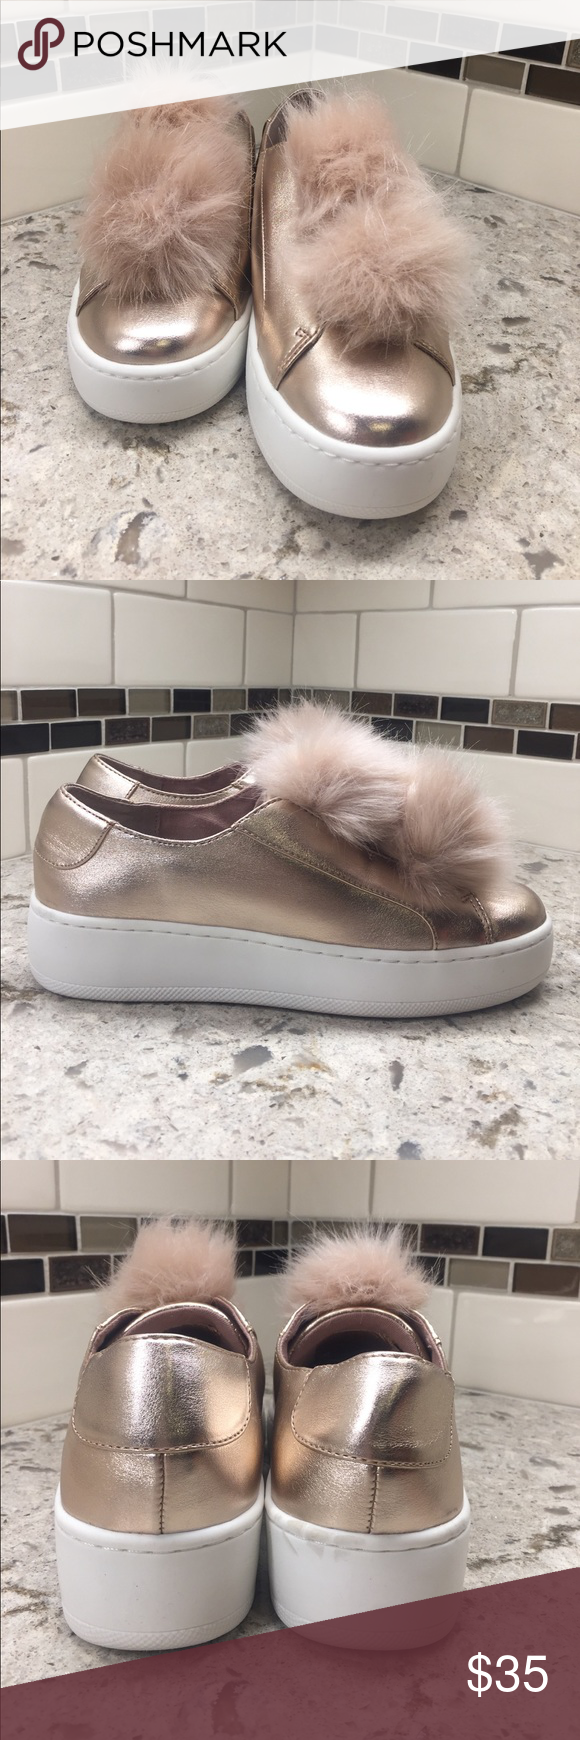 "a7b45865632 Steve Madden ""Breeze"" rose gold sneakers New in box super fun rose gold  colored leather sneakers with fun pink fur puff embellishment."